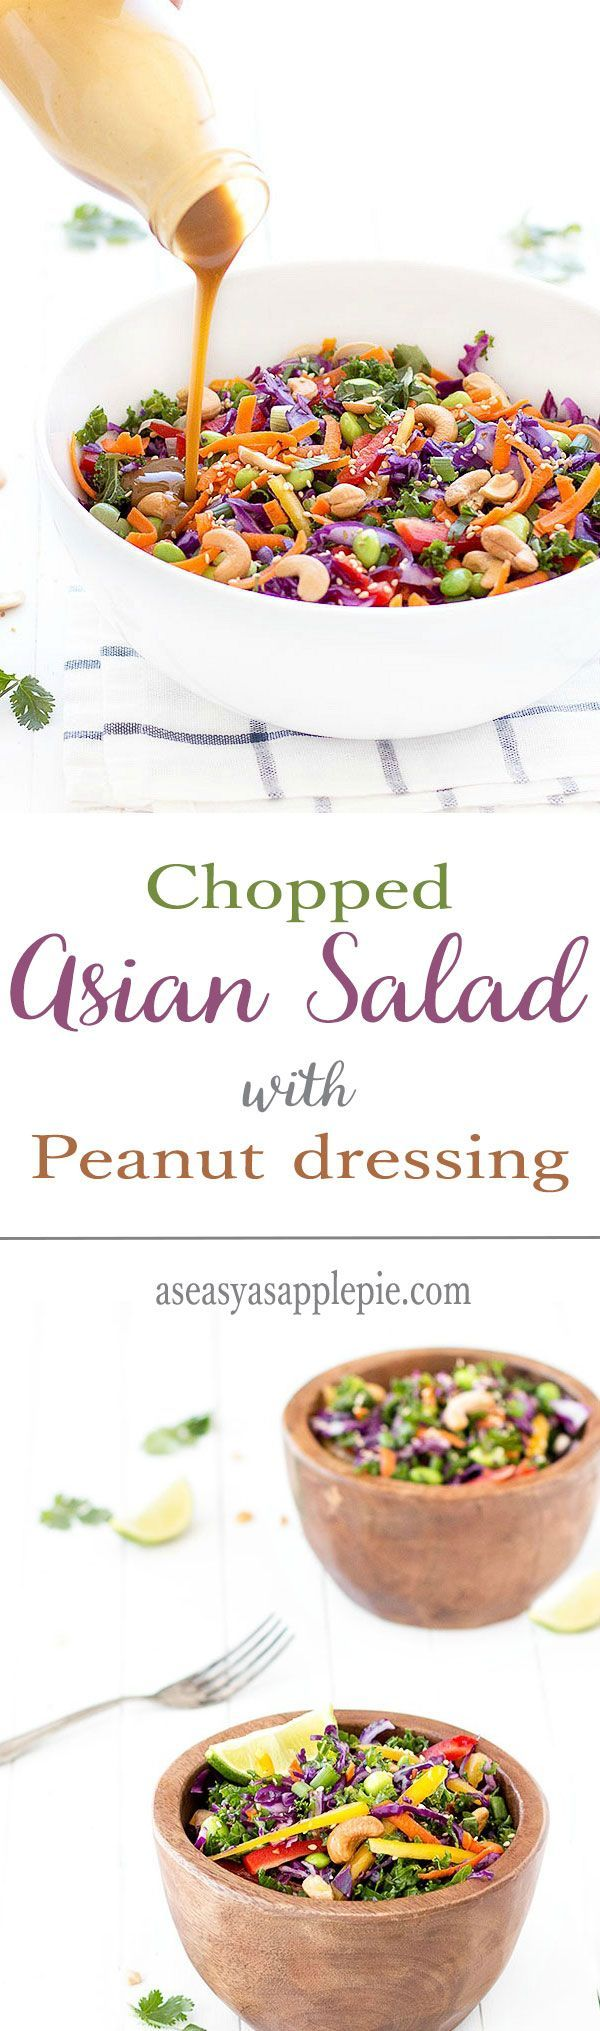 This chopped asian salad with peanut dressing is full of great ingredients that add flavor, texture, color and nutrition!